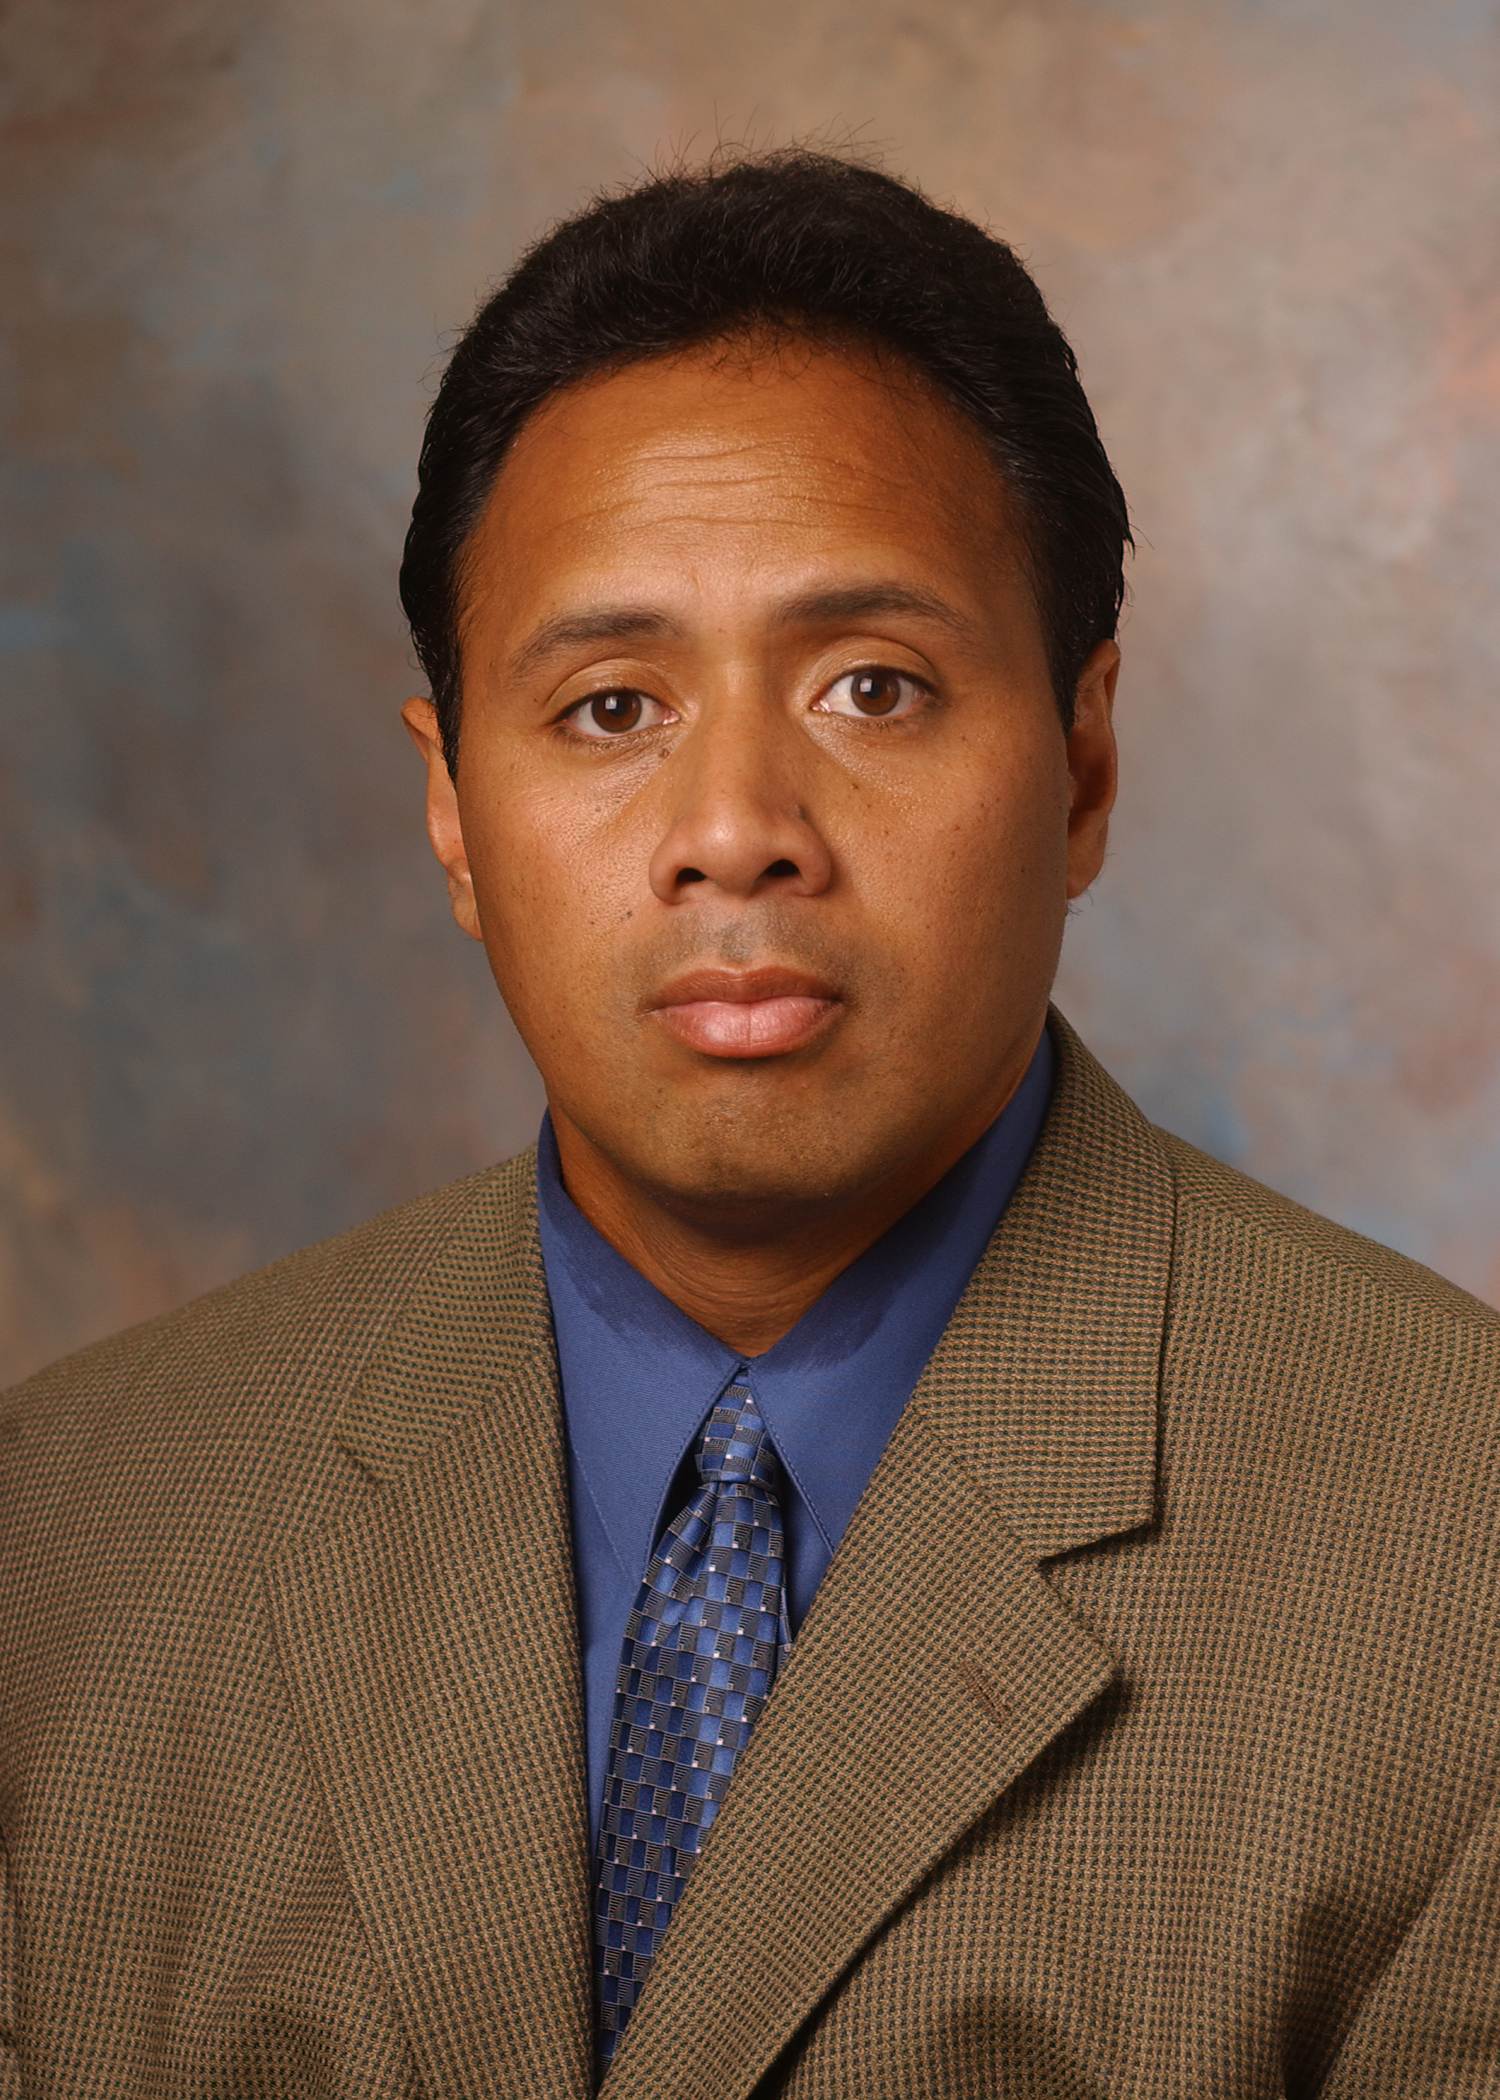 Longtime U.S. Naval Academy head football coach Ken Niumatalolo also serves as president of the Annapolis Maryland Stake.